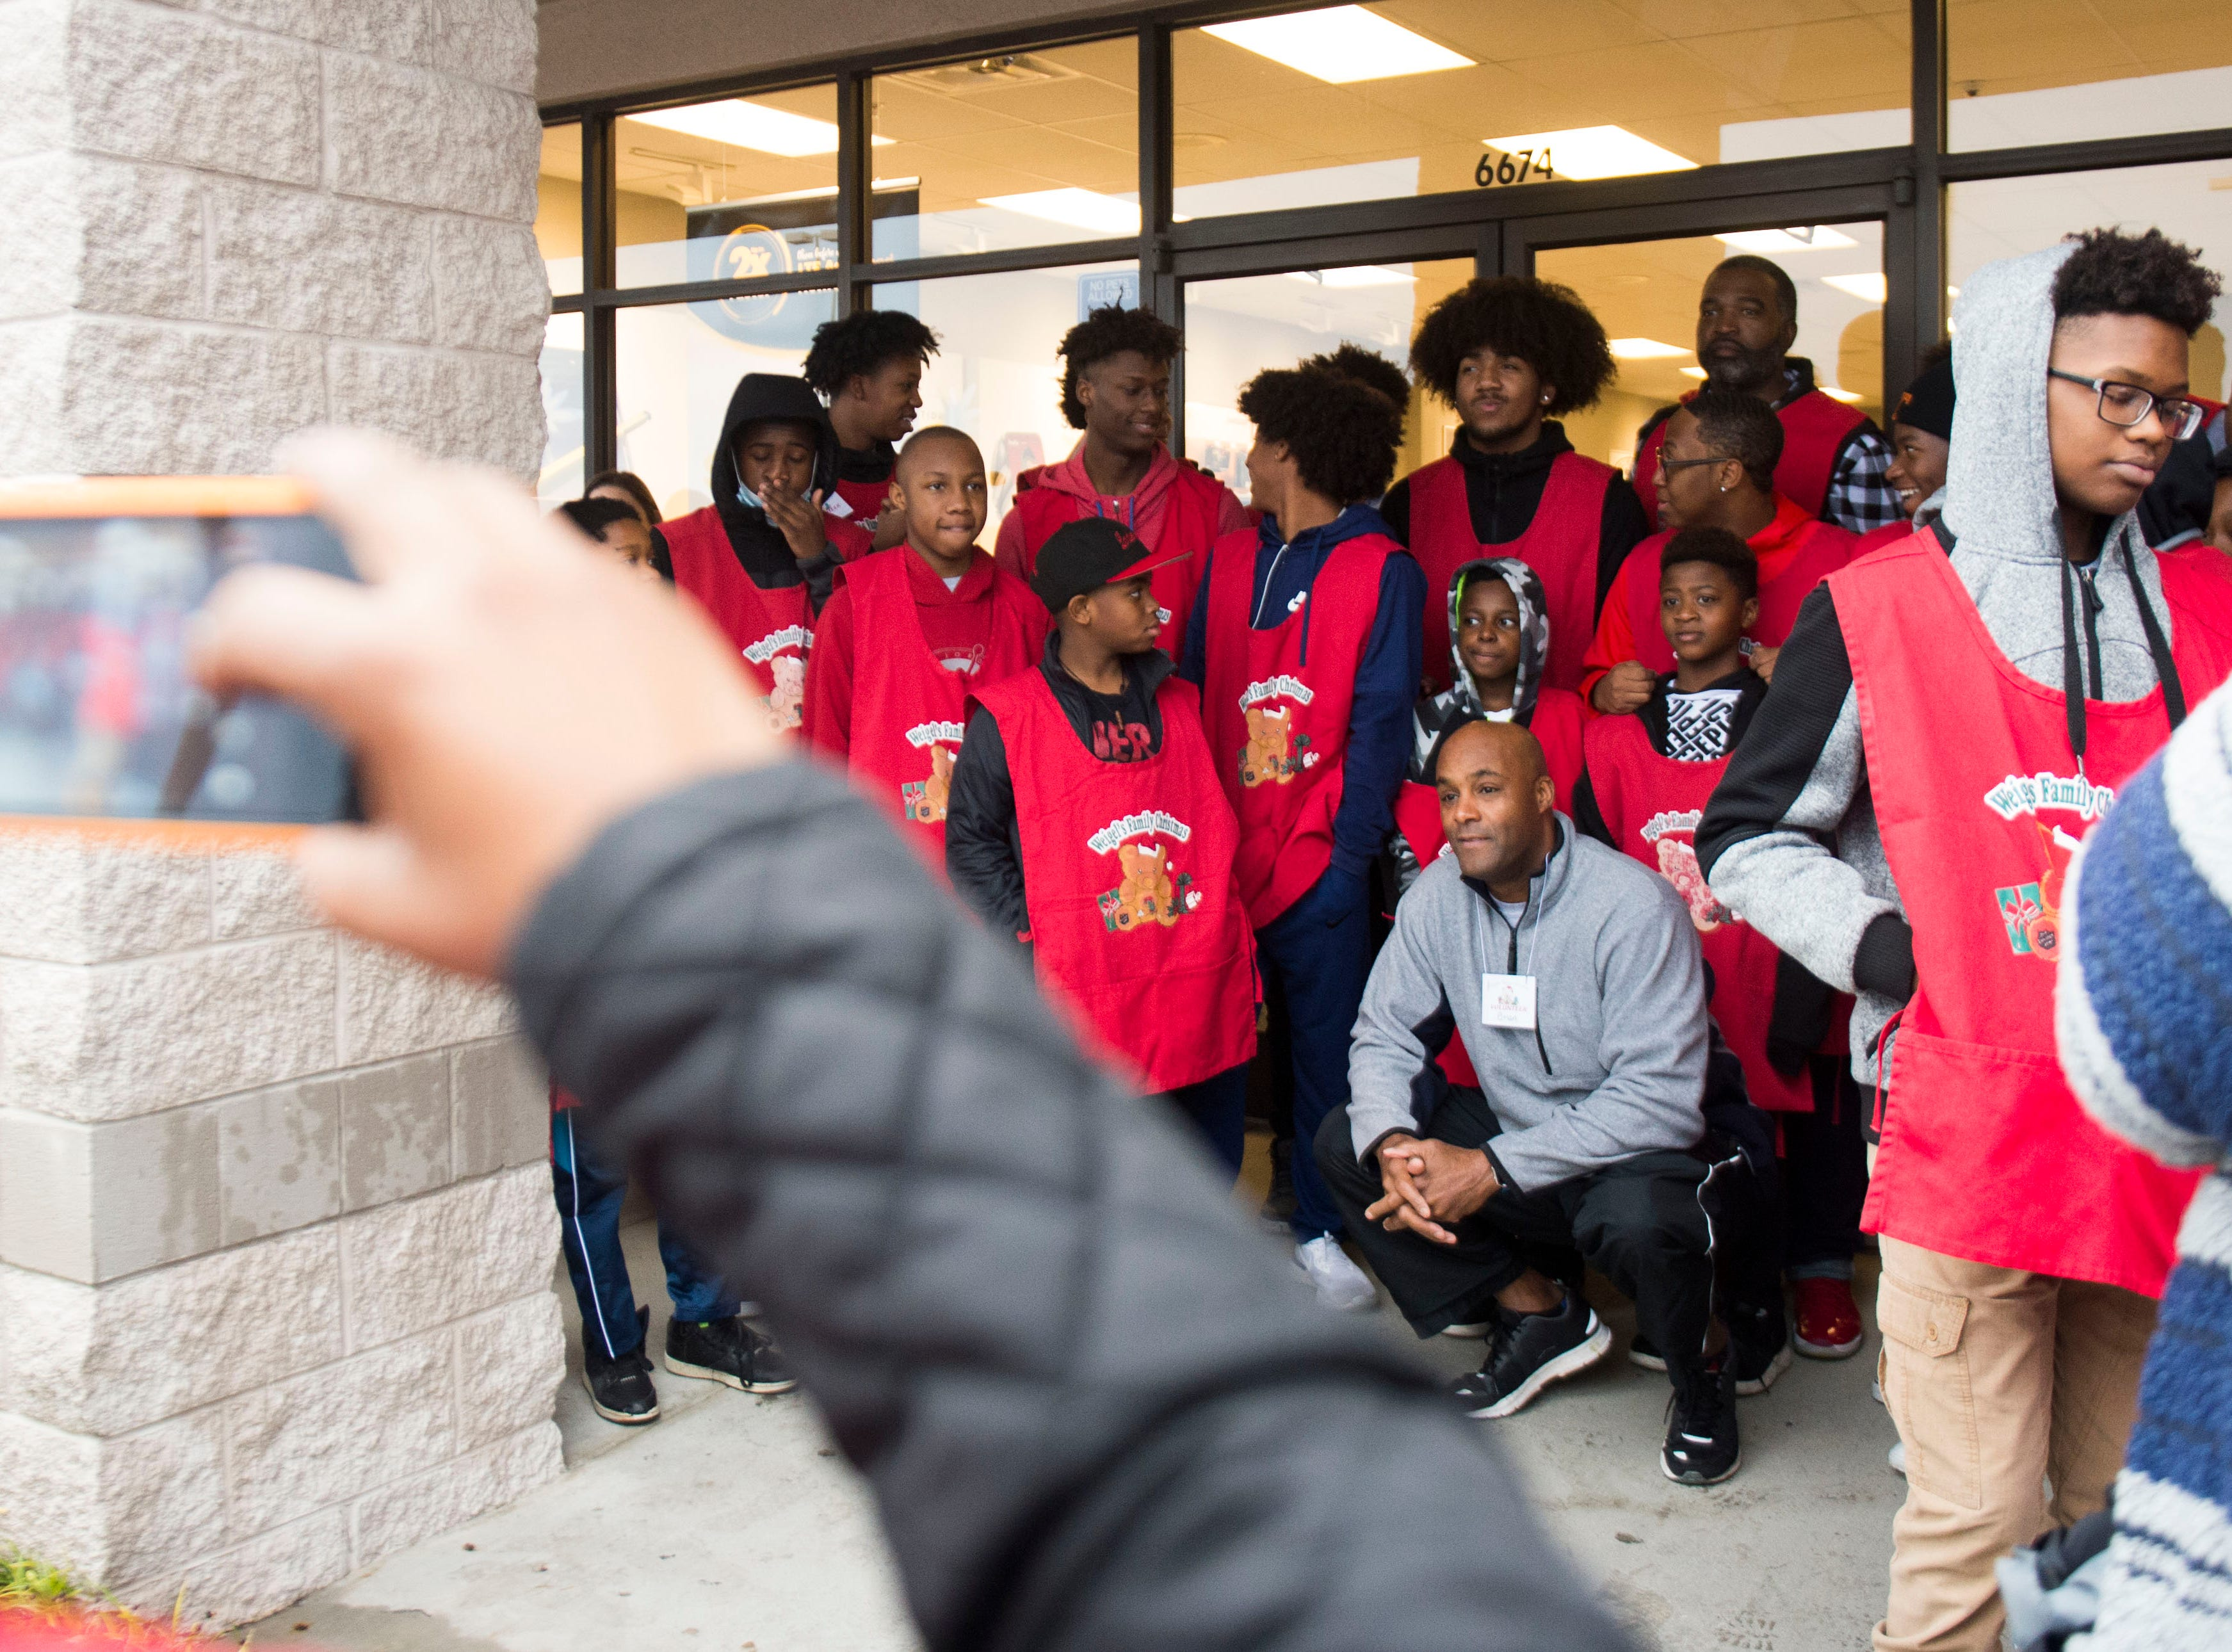 Members of 100 Black Men pose for a photo while waiting for children to arrive on buses at the Target on Clinton Highway during the annual Weigel's Family Christmas Saturday, Dec. 1, 2018. This is the 21st year Weigel's has held the shopping spree for local underprivileged children.